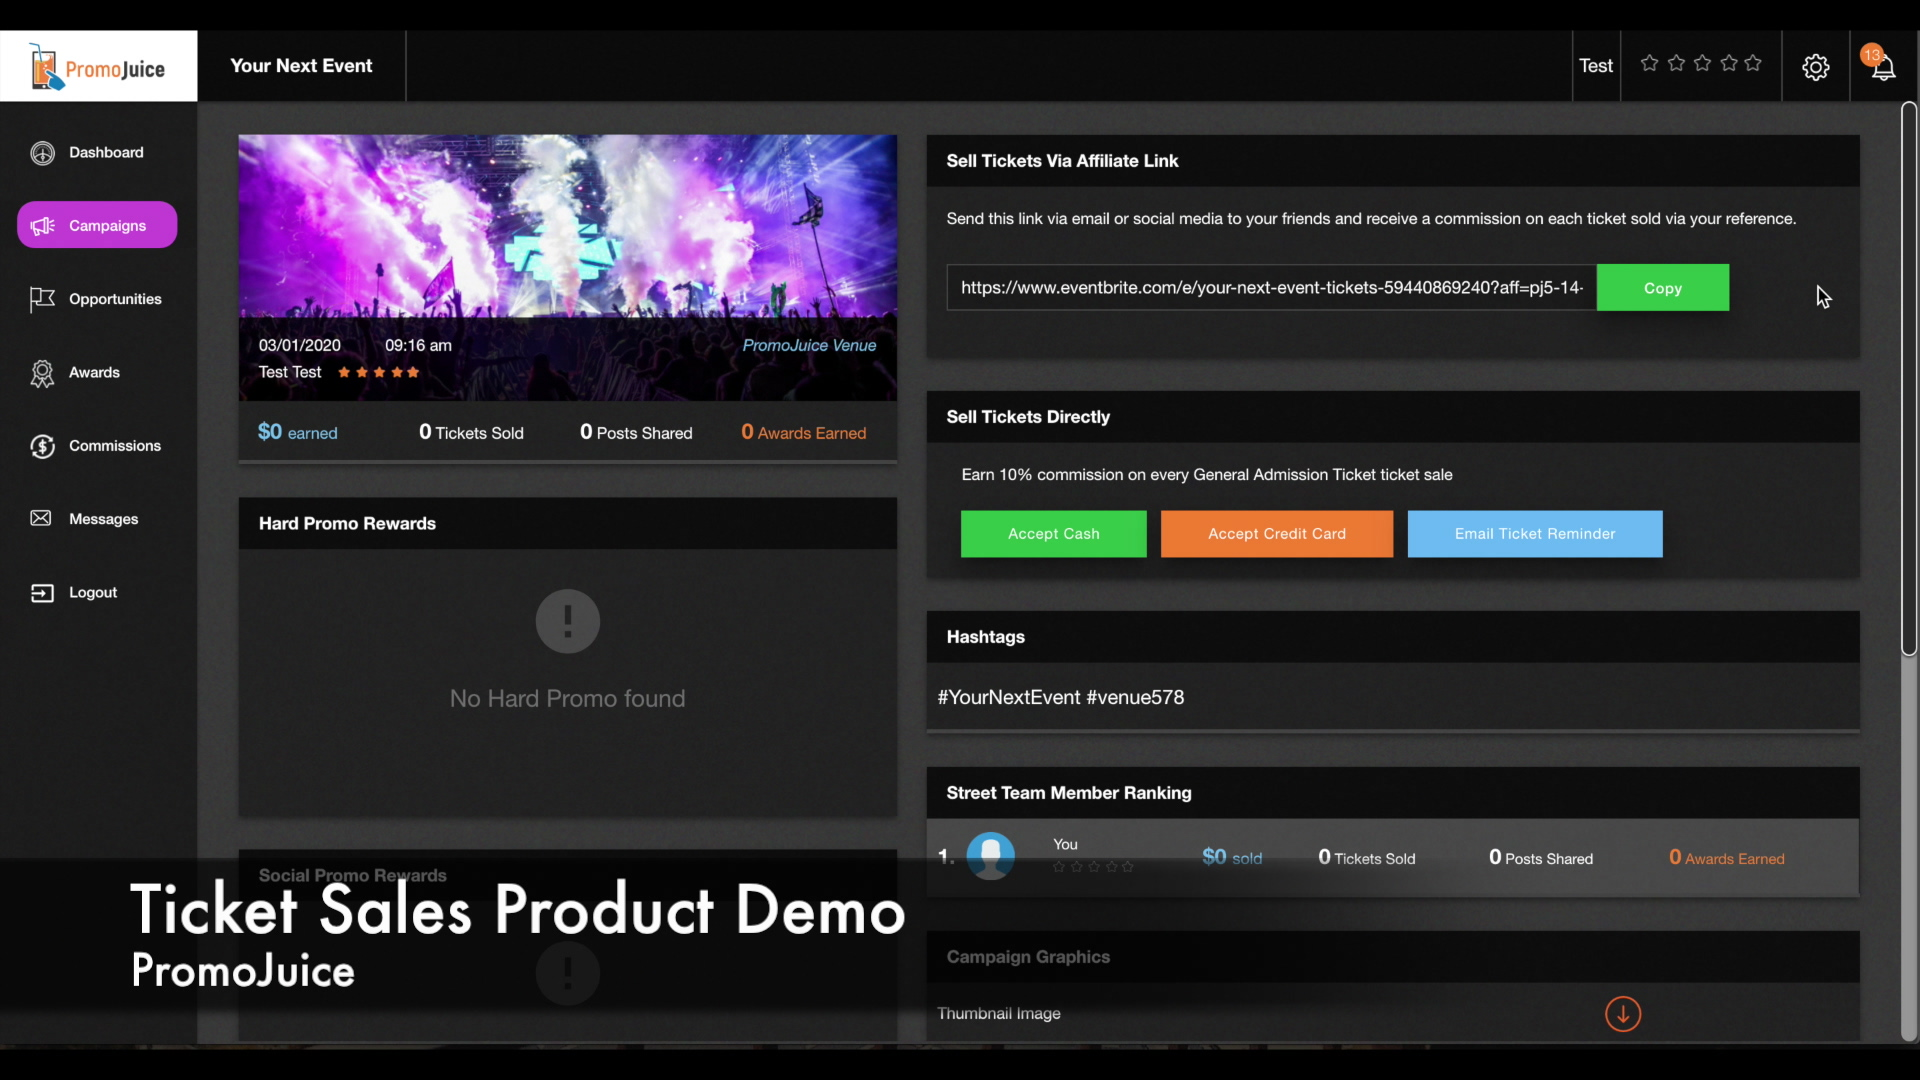 Ticket Sales Product Demo